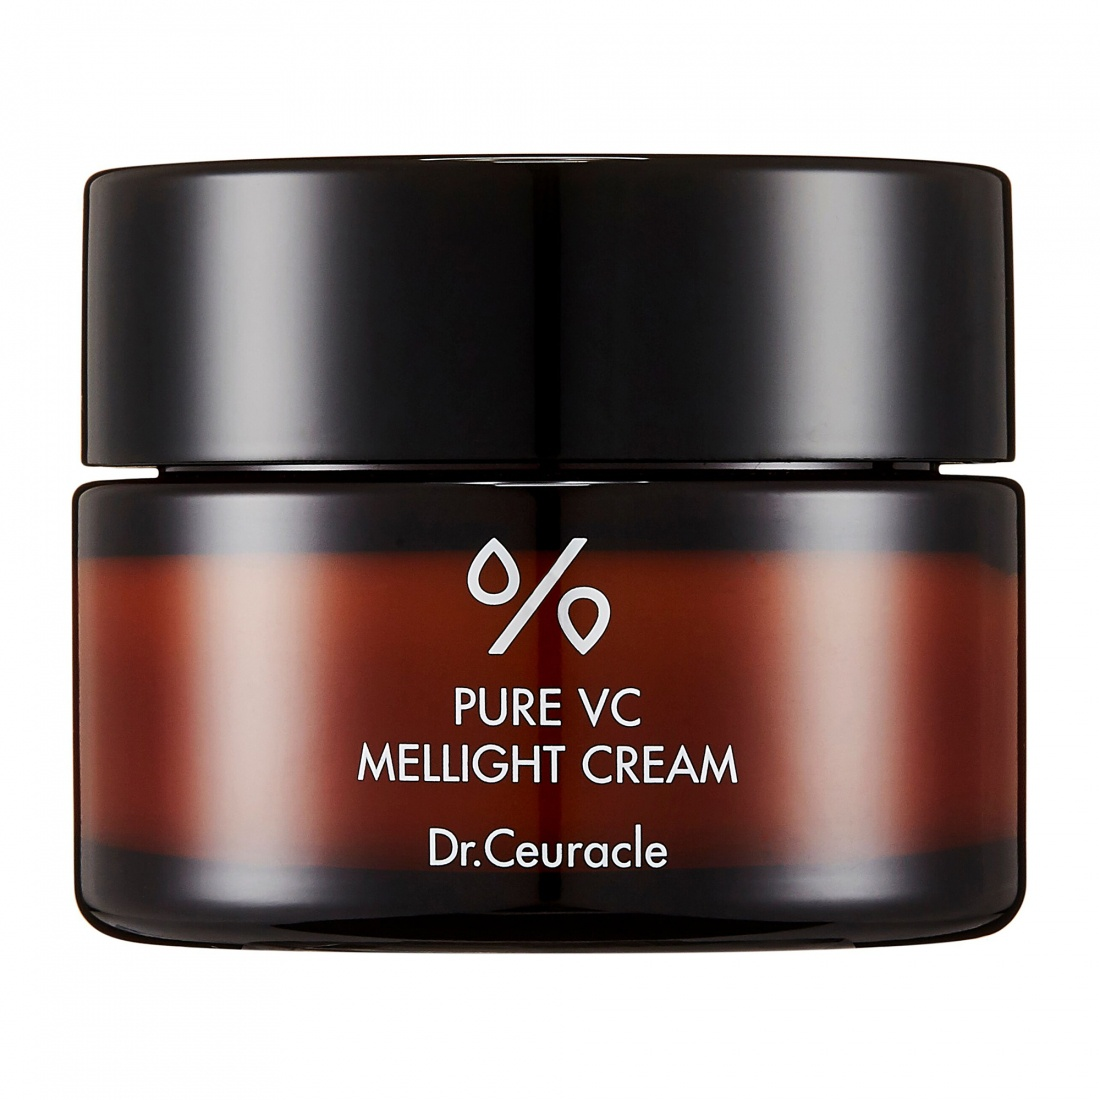 Dr Ceuracle Pure VC Mellight Cream